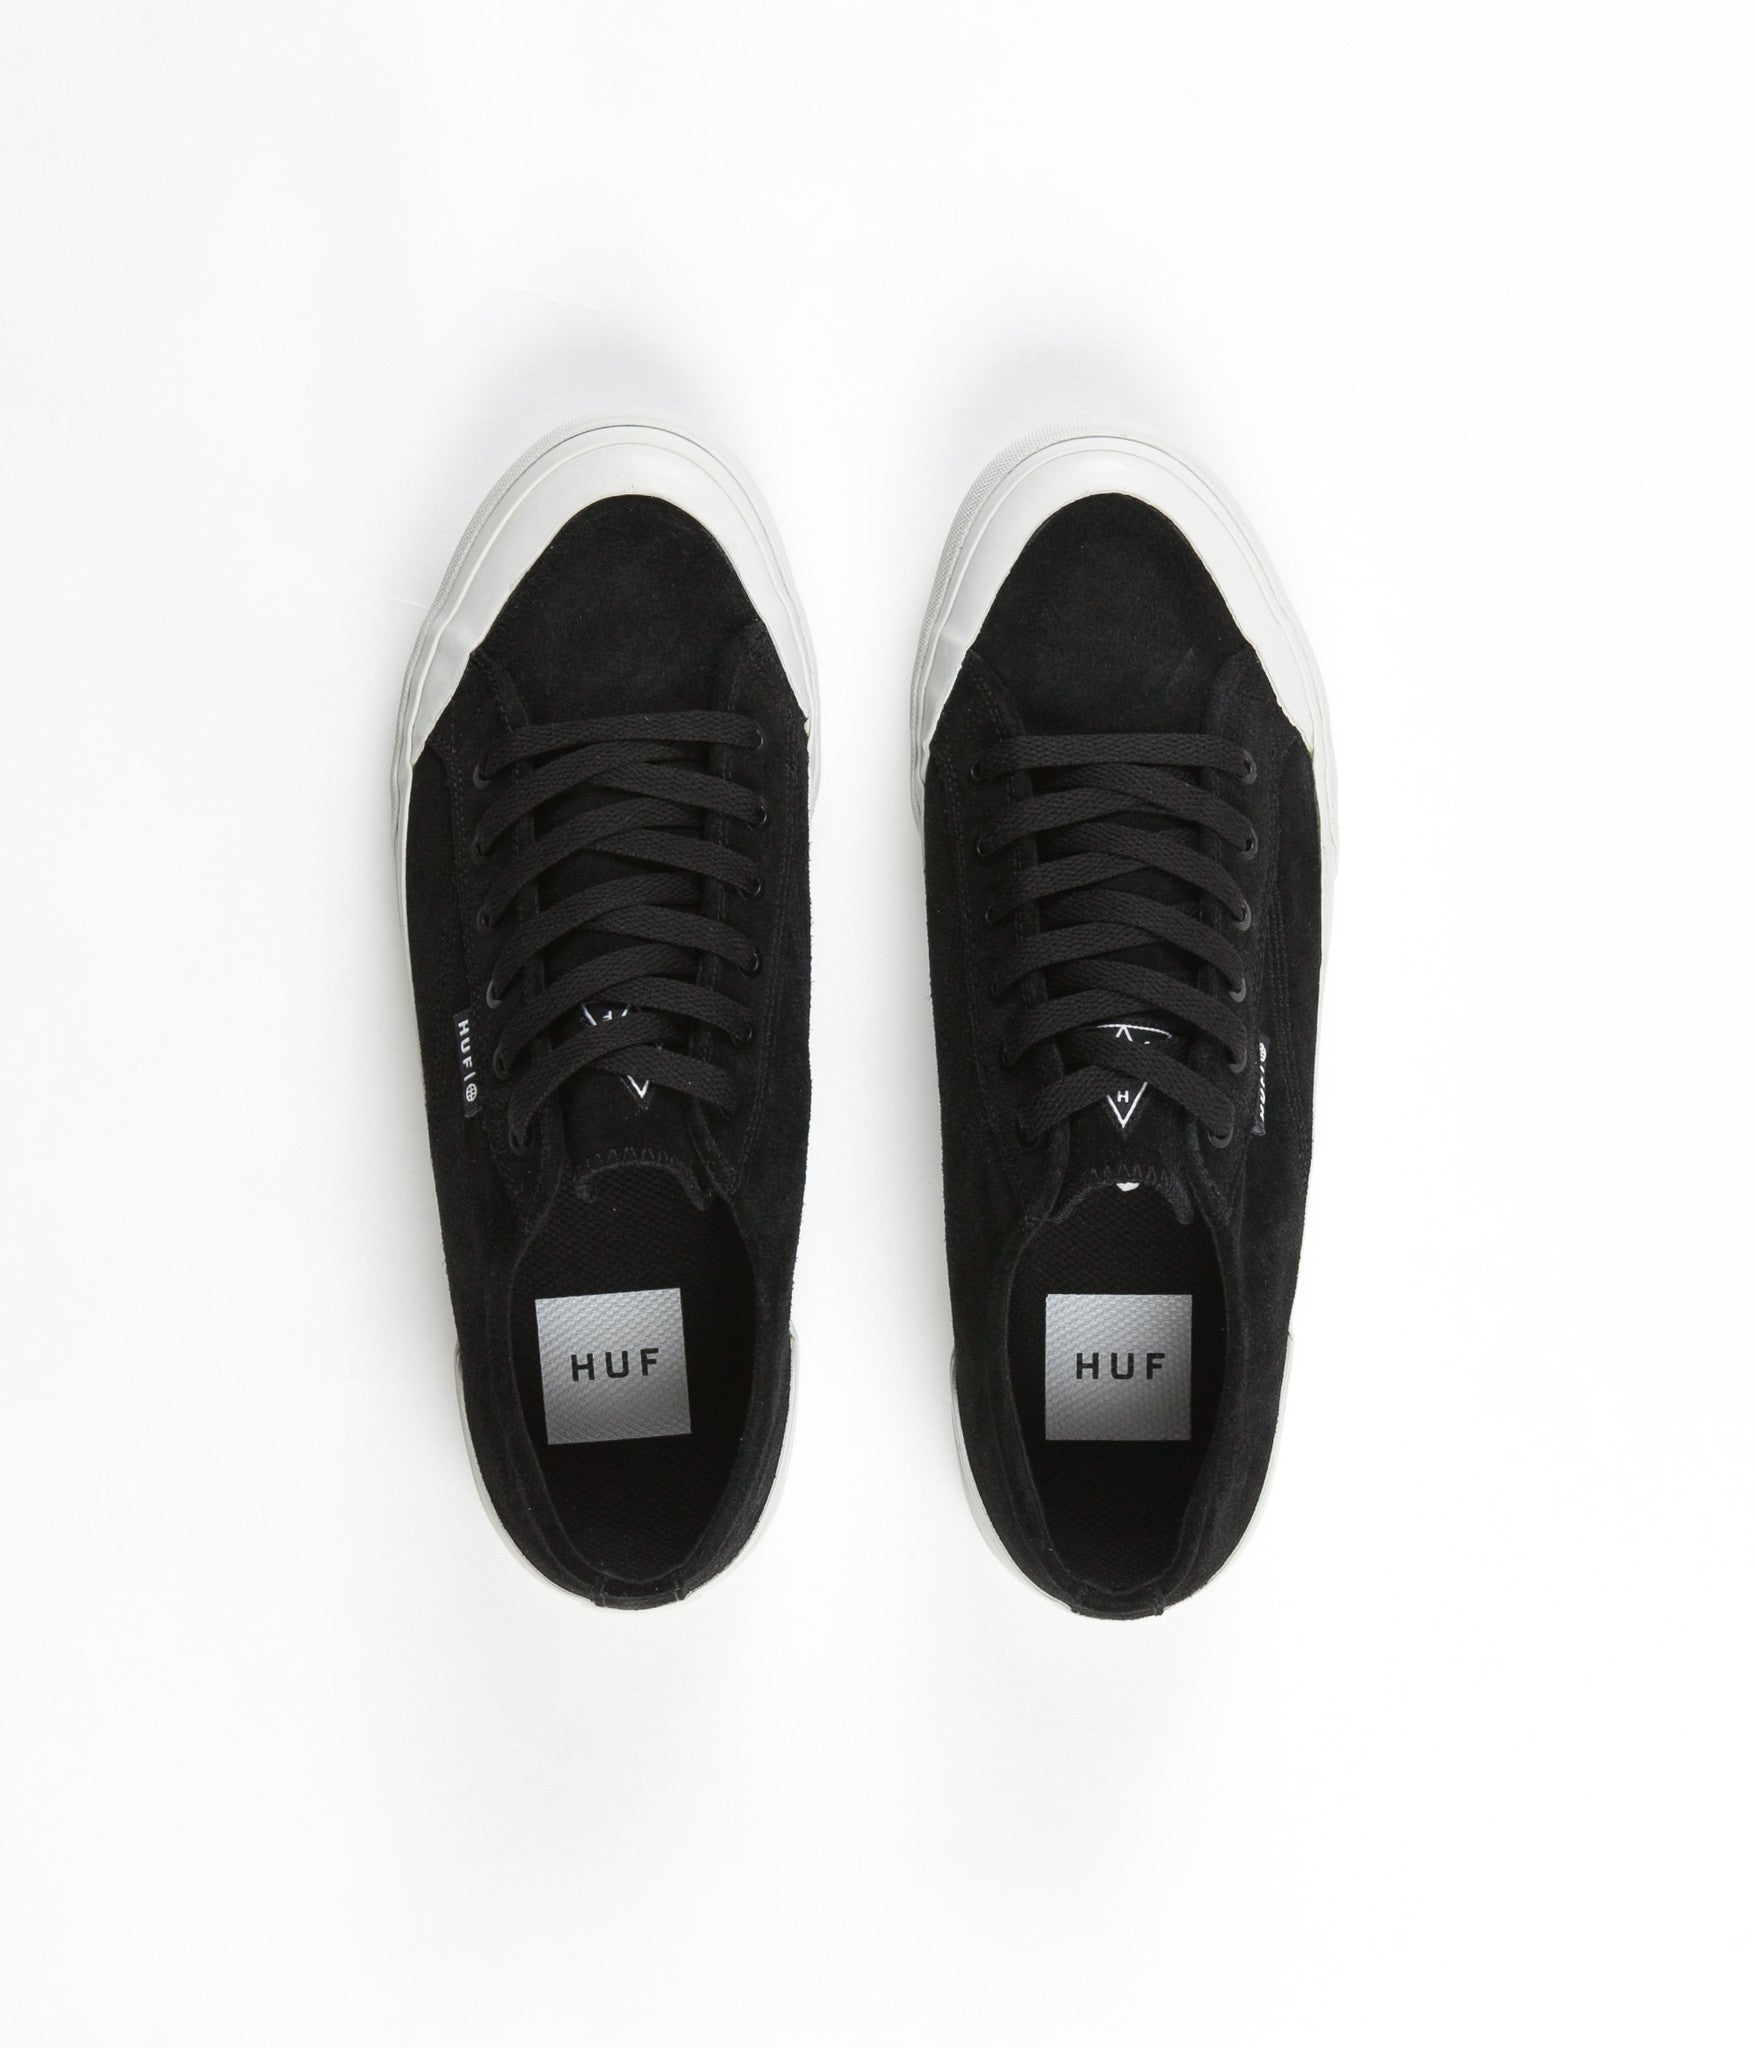 HUF Classic Lo Shoes - Black / Bone